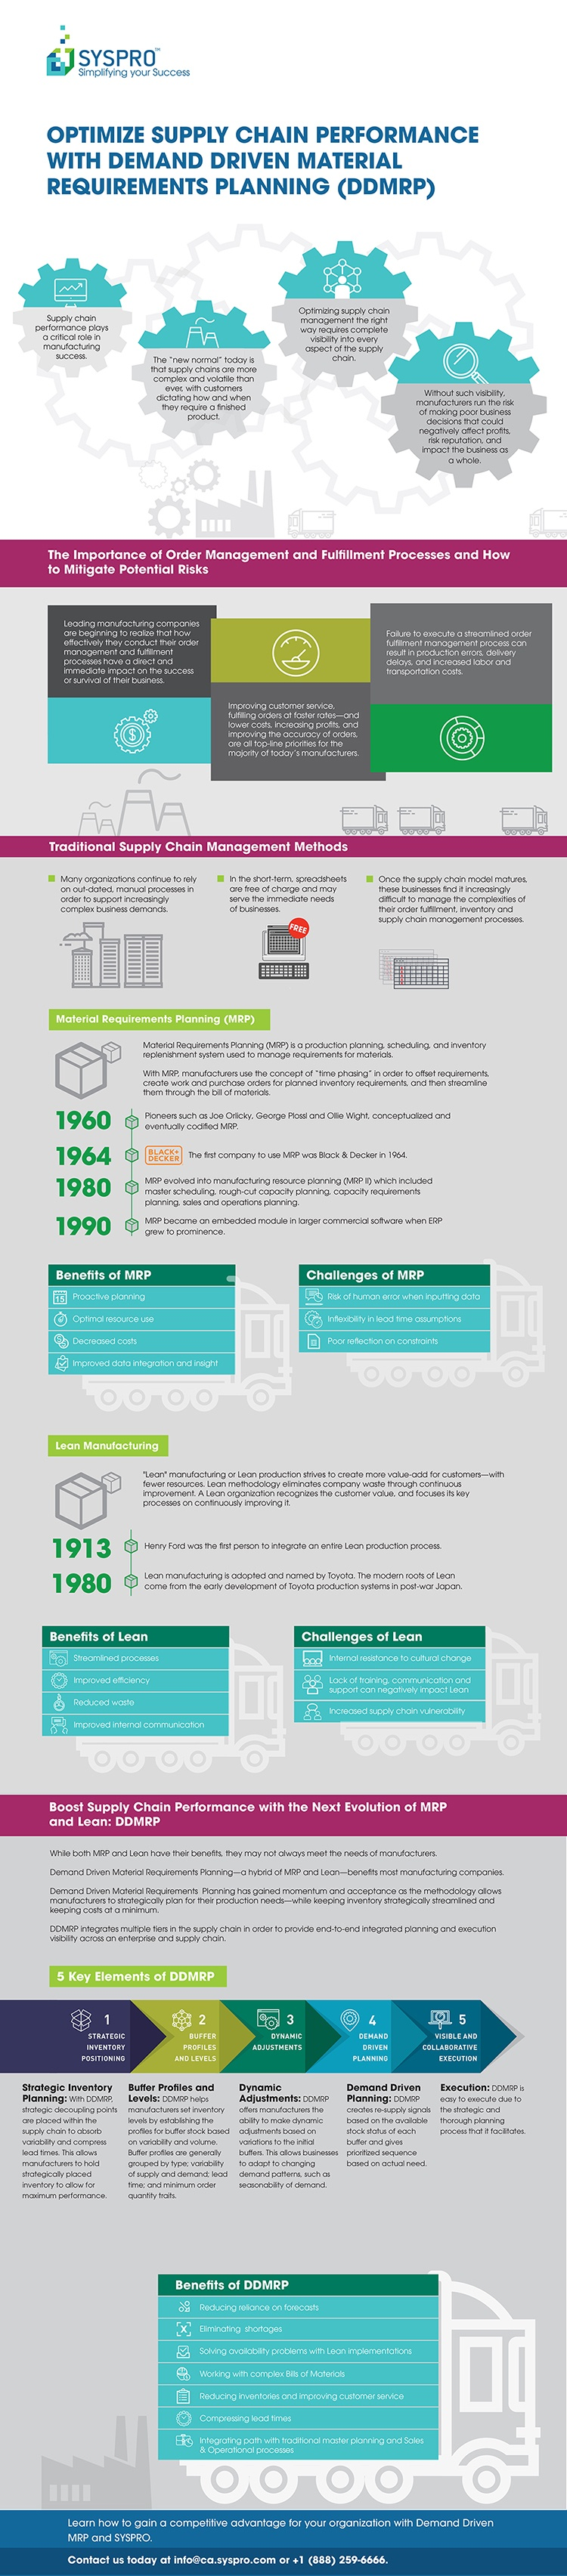 Optimize Supply Chain Performance with DDMRP